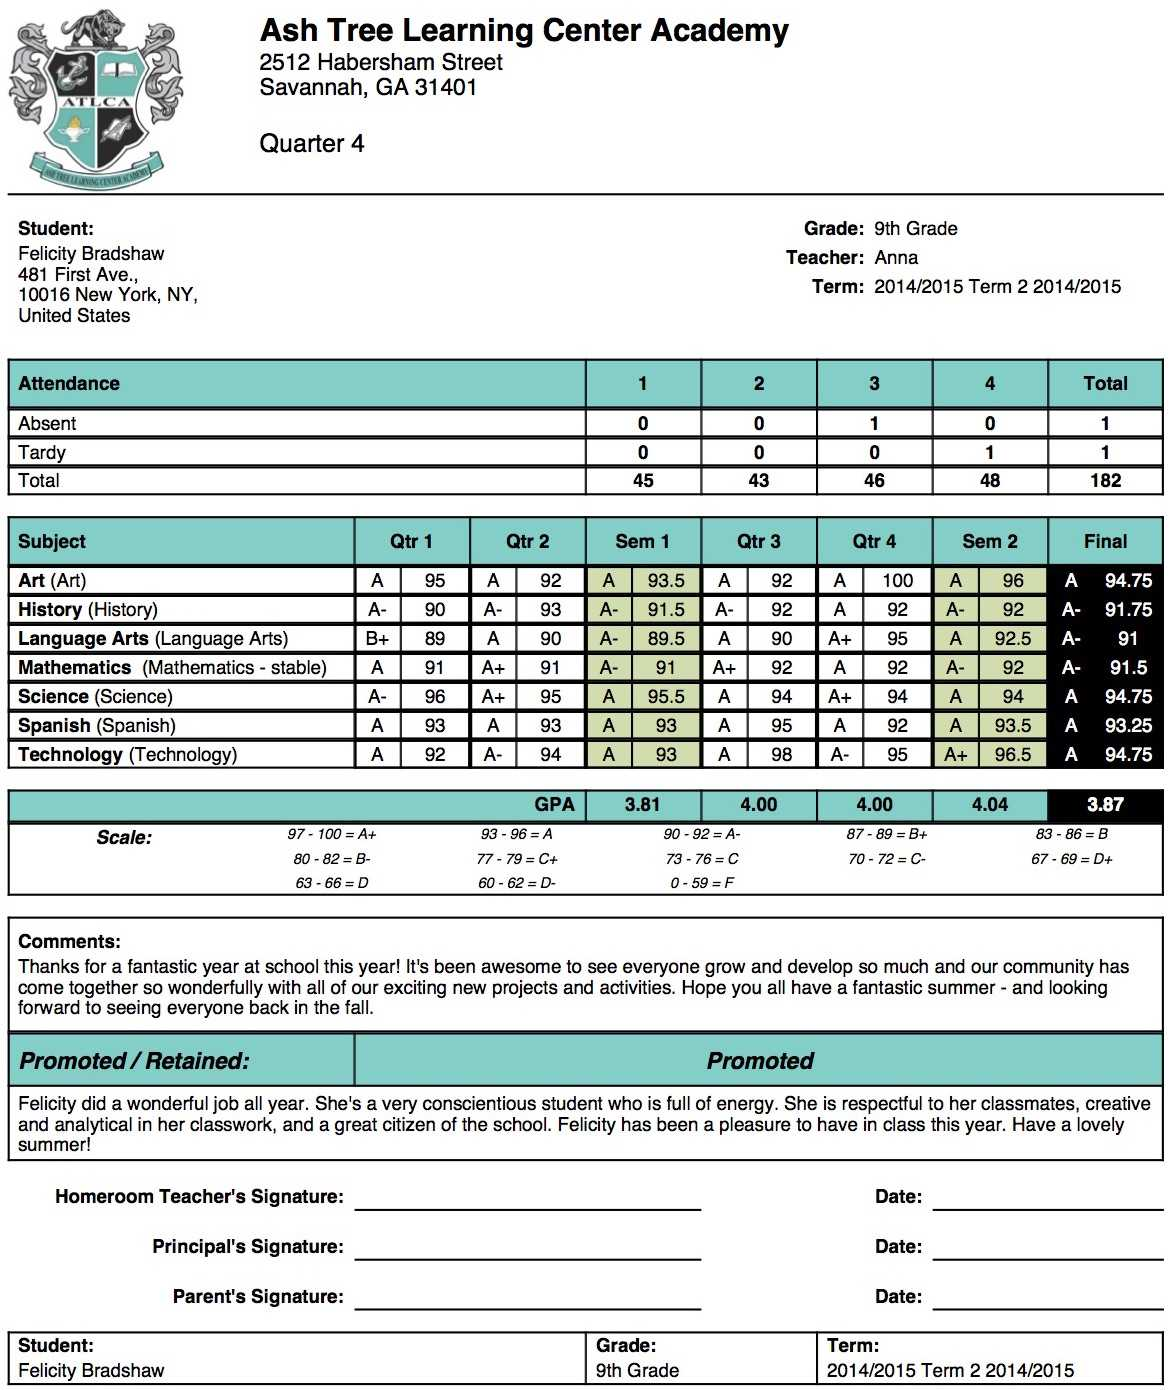 Ash Tree Learning Center Academy Report Card Template With Middle School Report Card Template